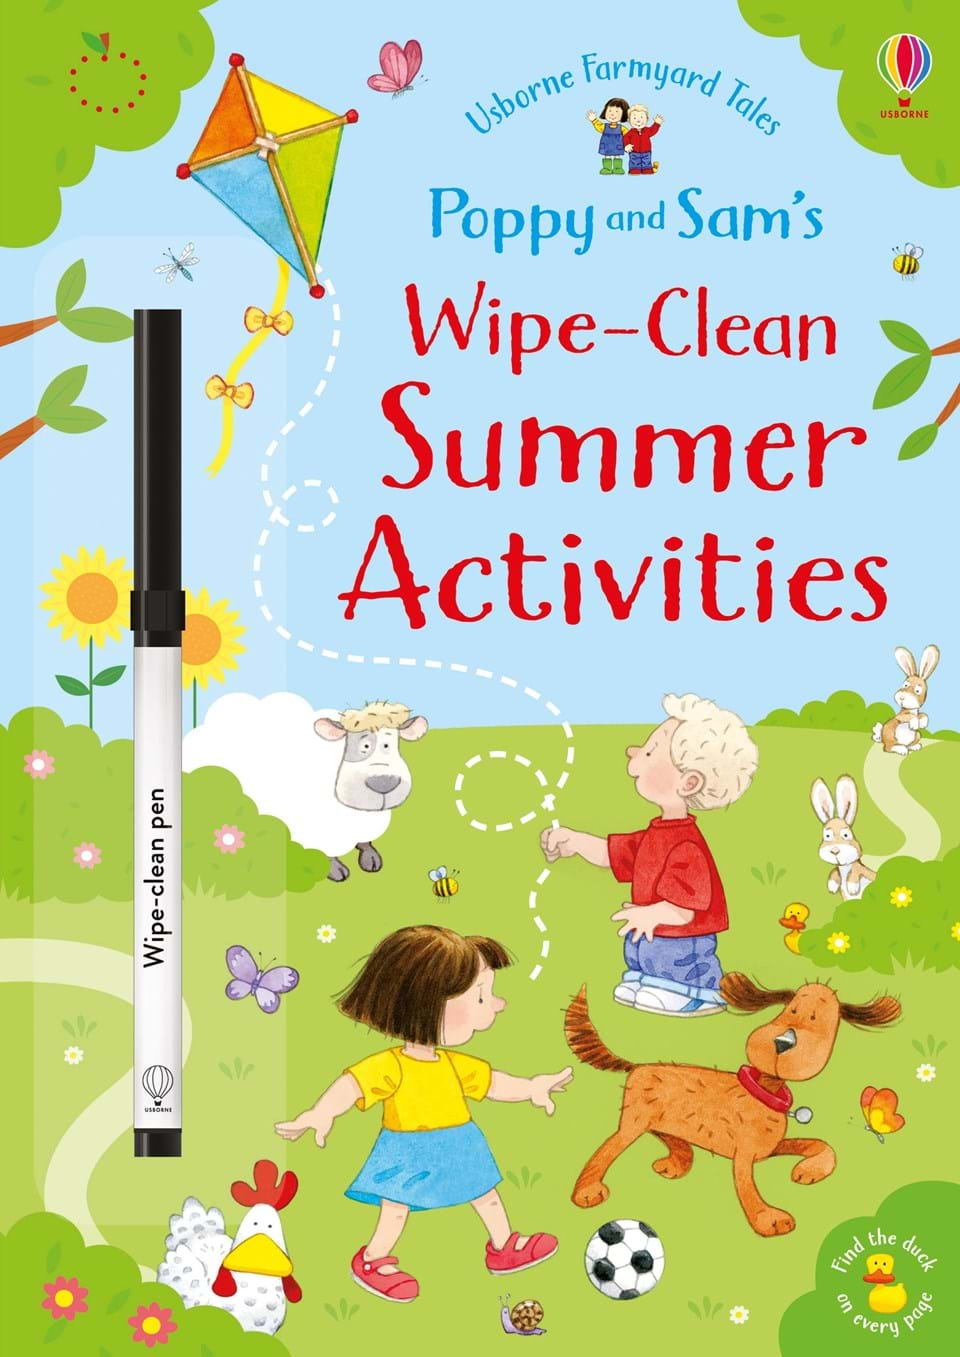 poppy-and-sams-wipe-clean-summer-activities